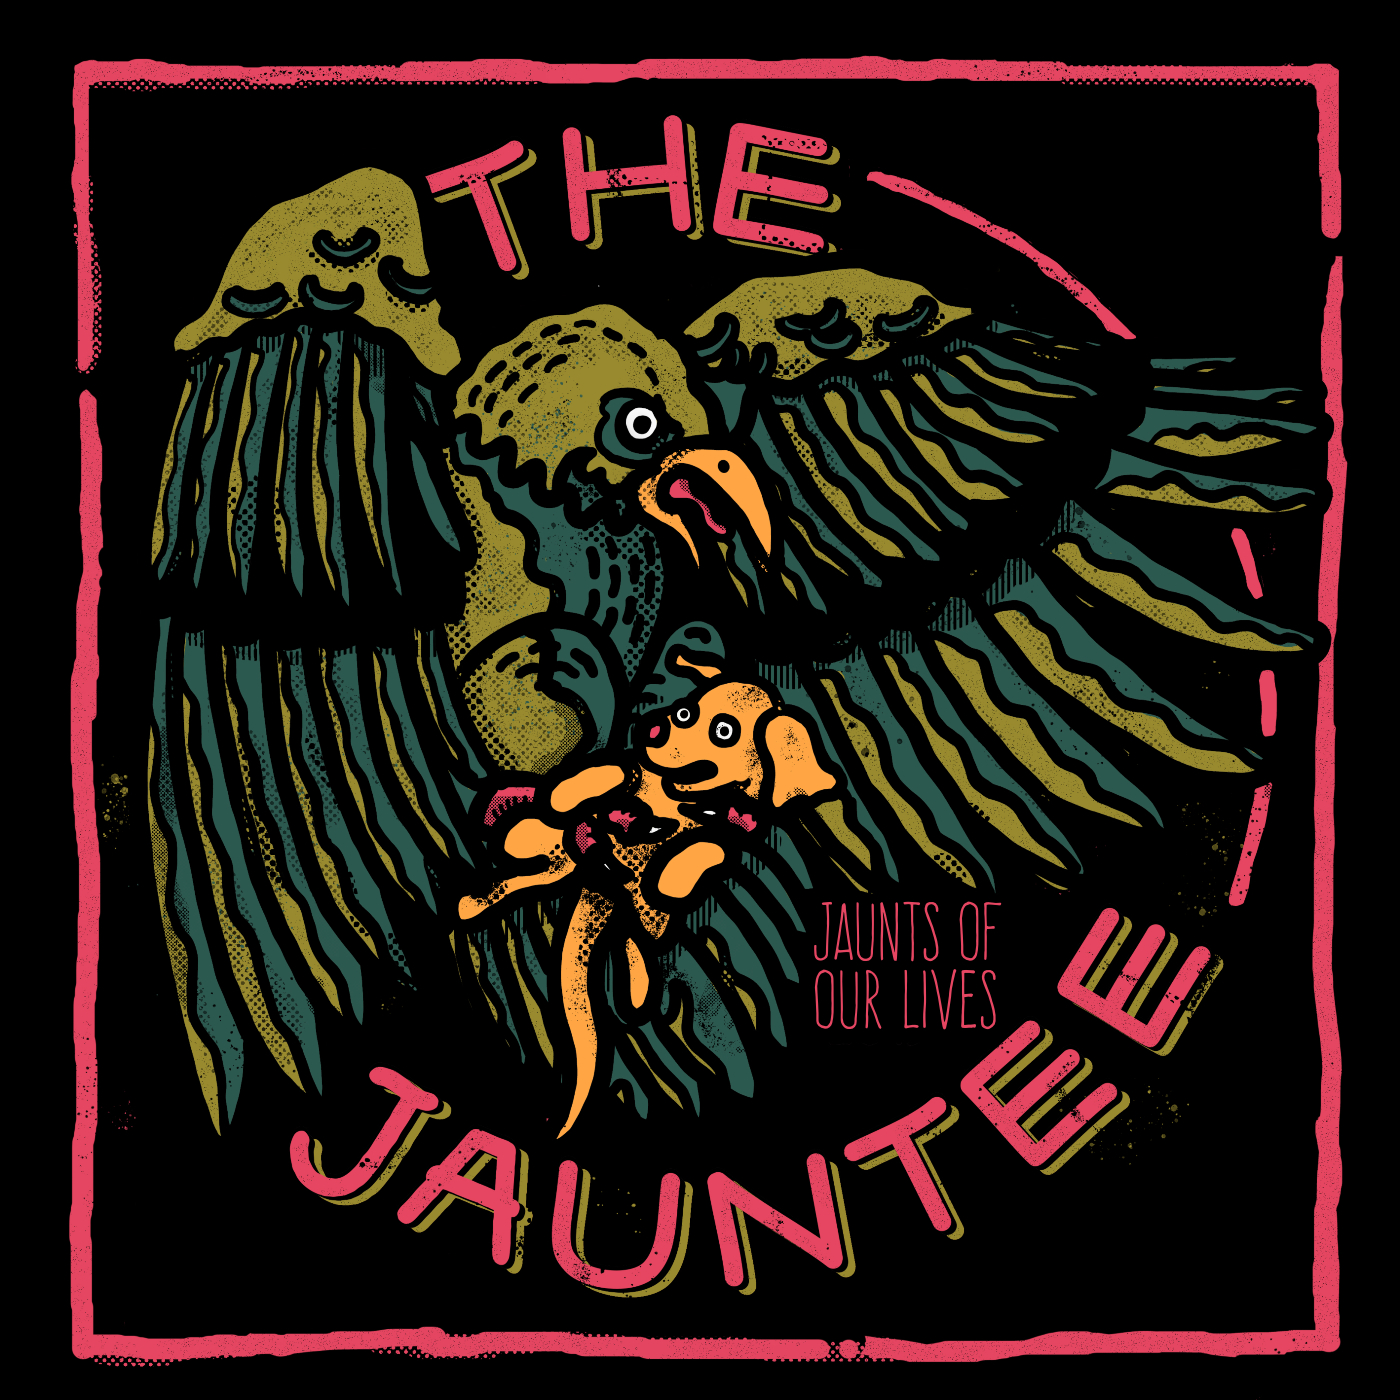 The Jauntee release 'Jaunts Of Our Lives